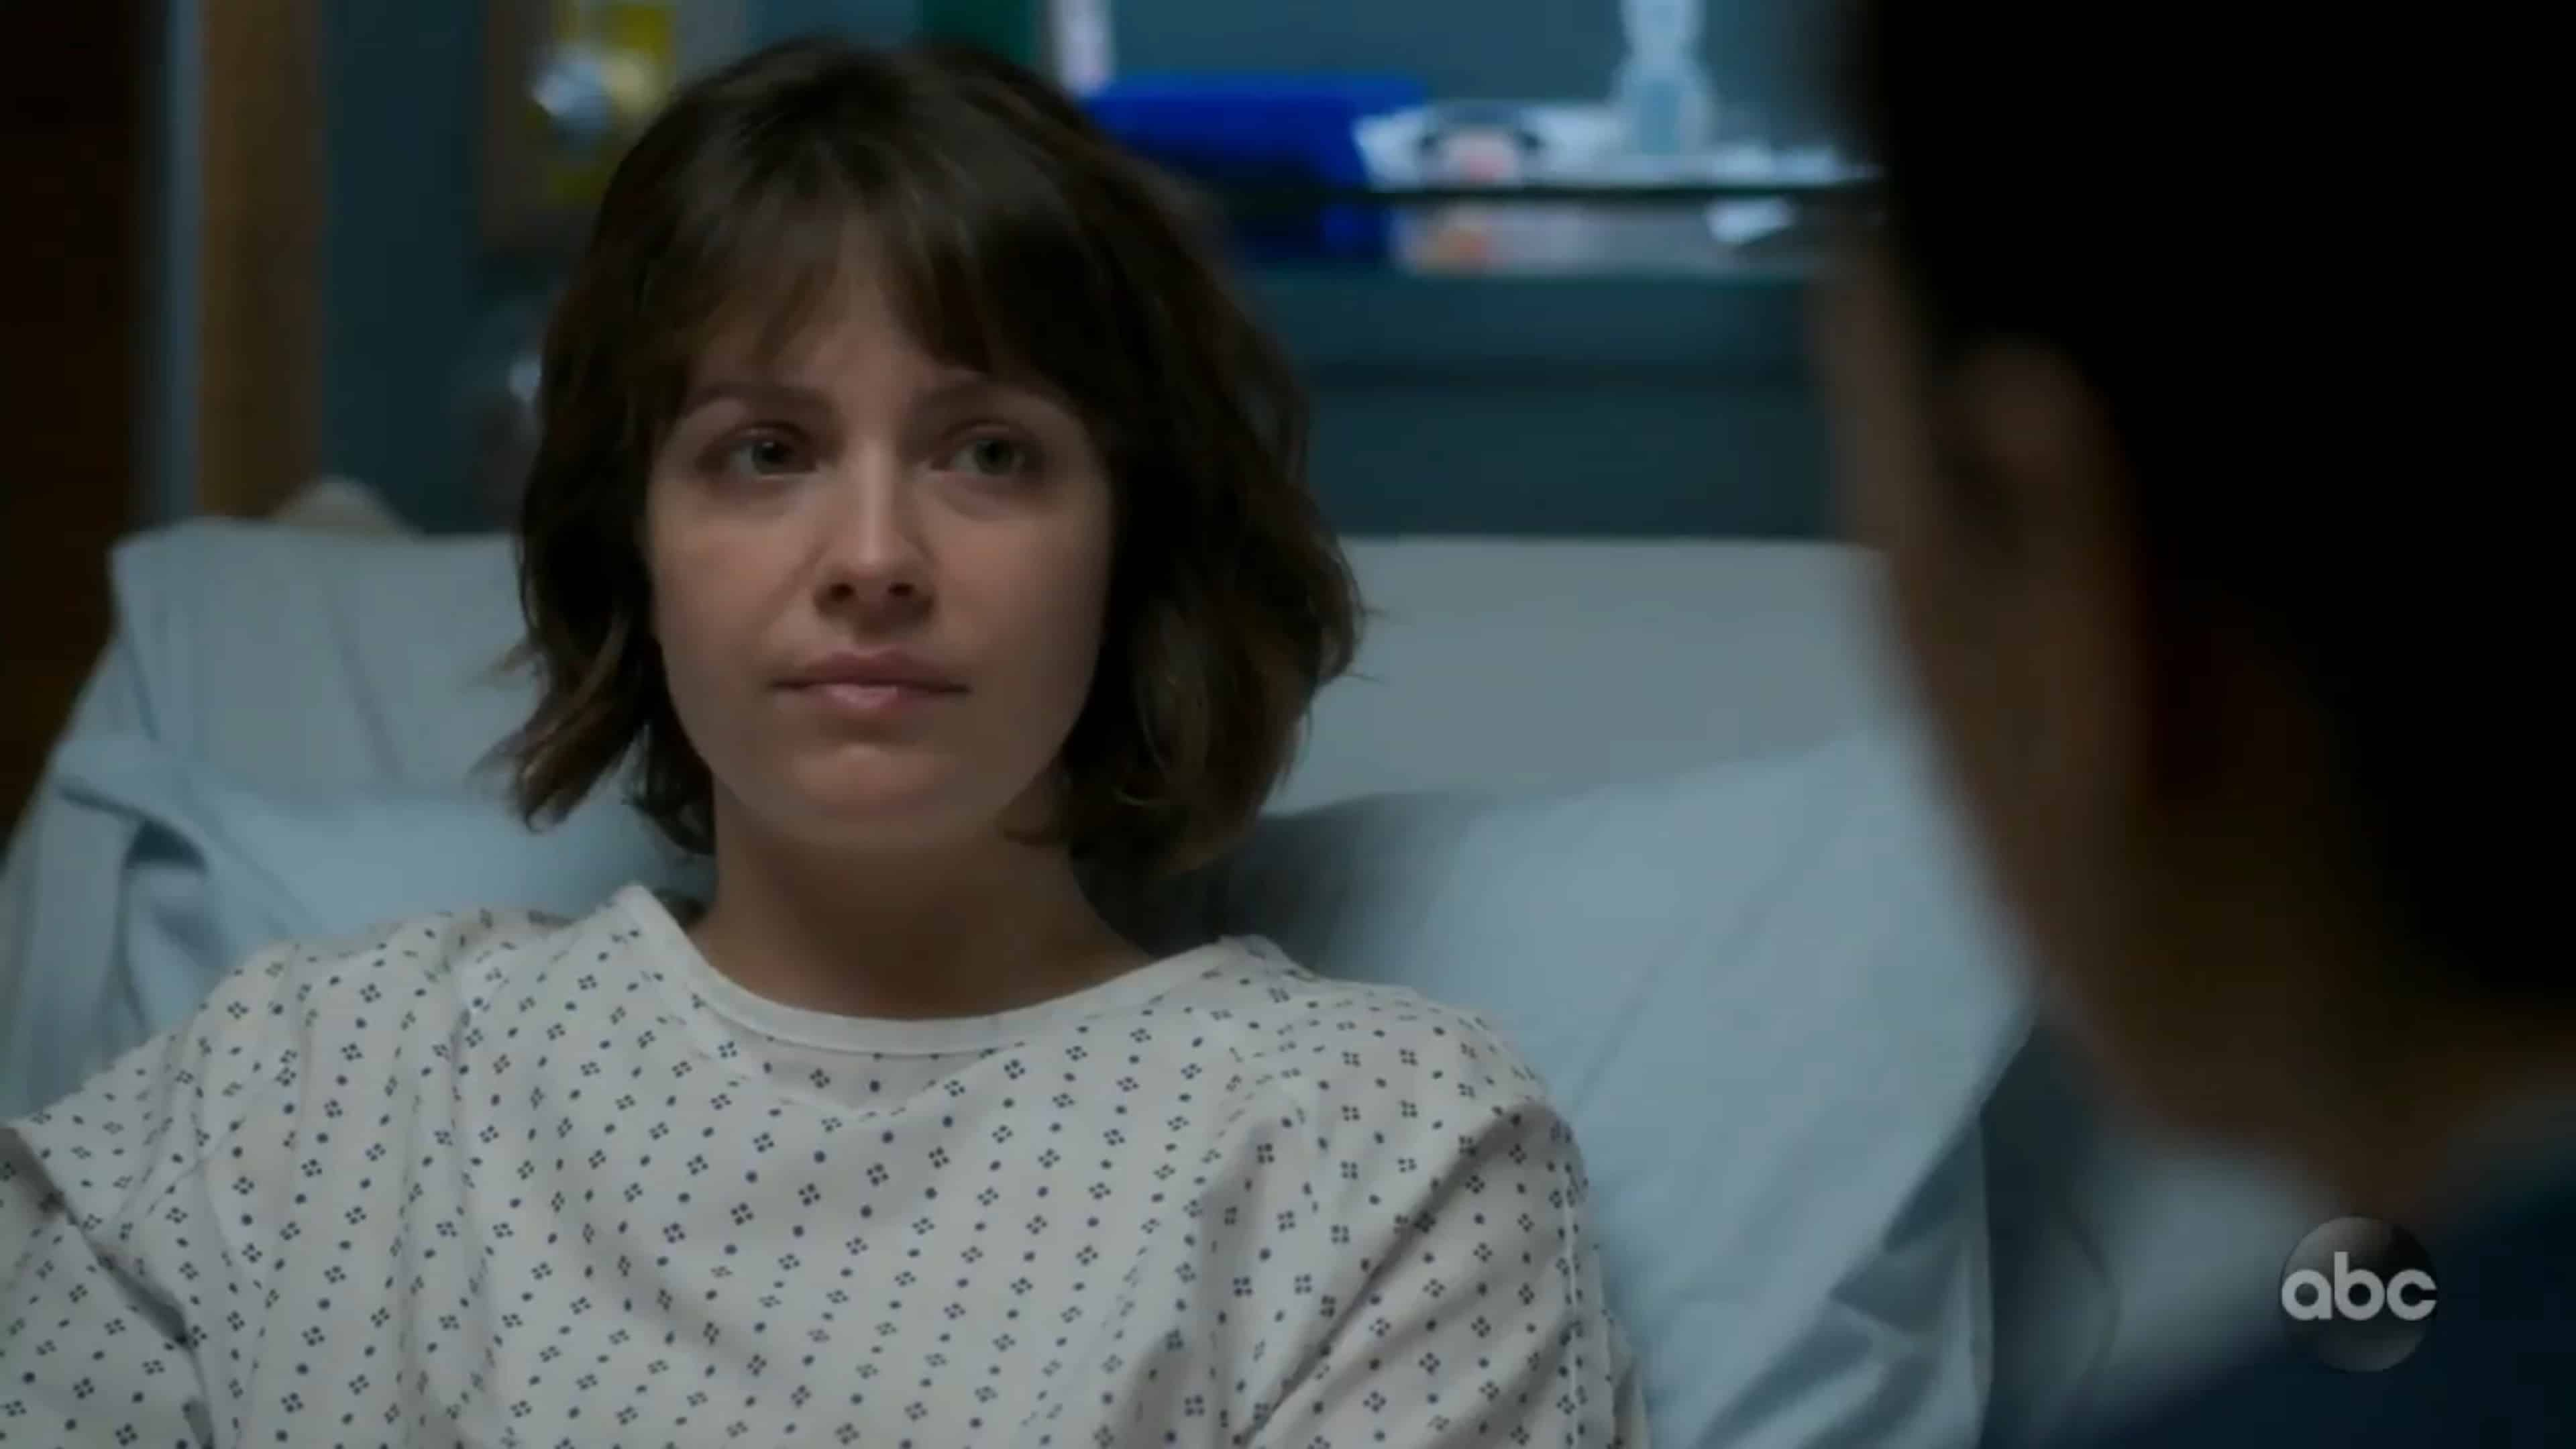 Lea in a hospital bed